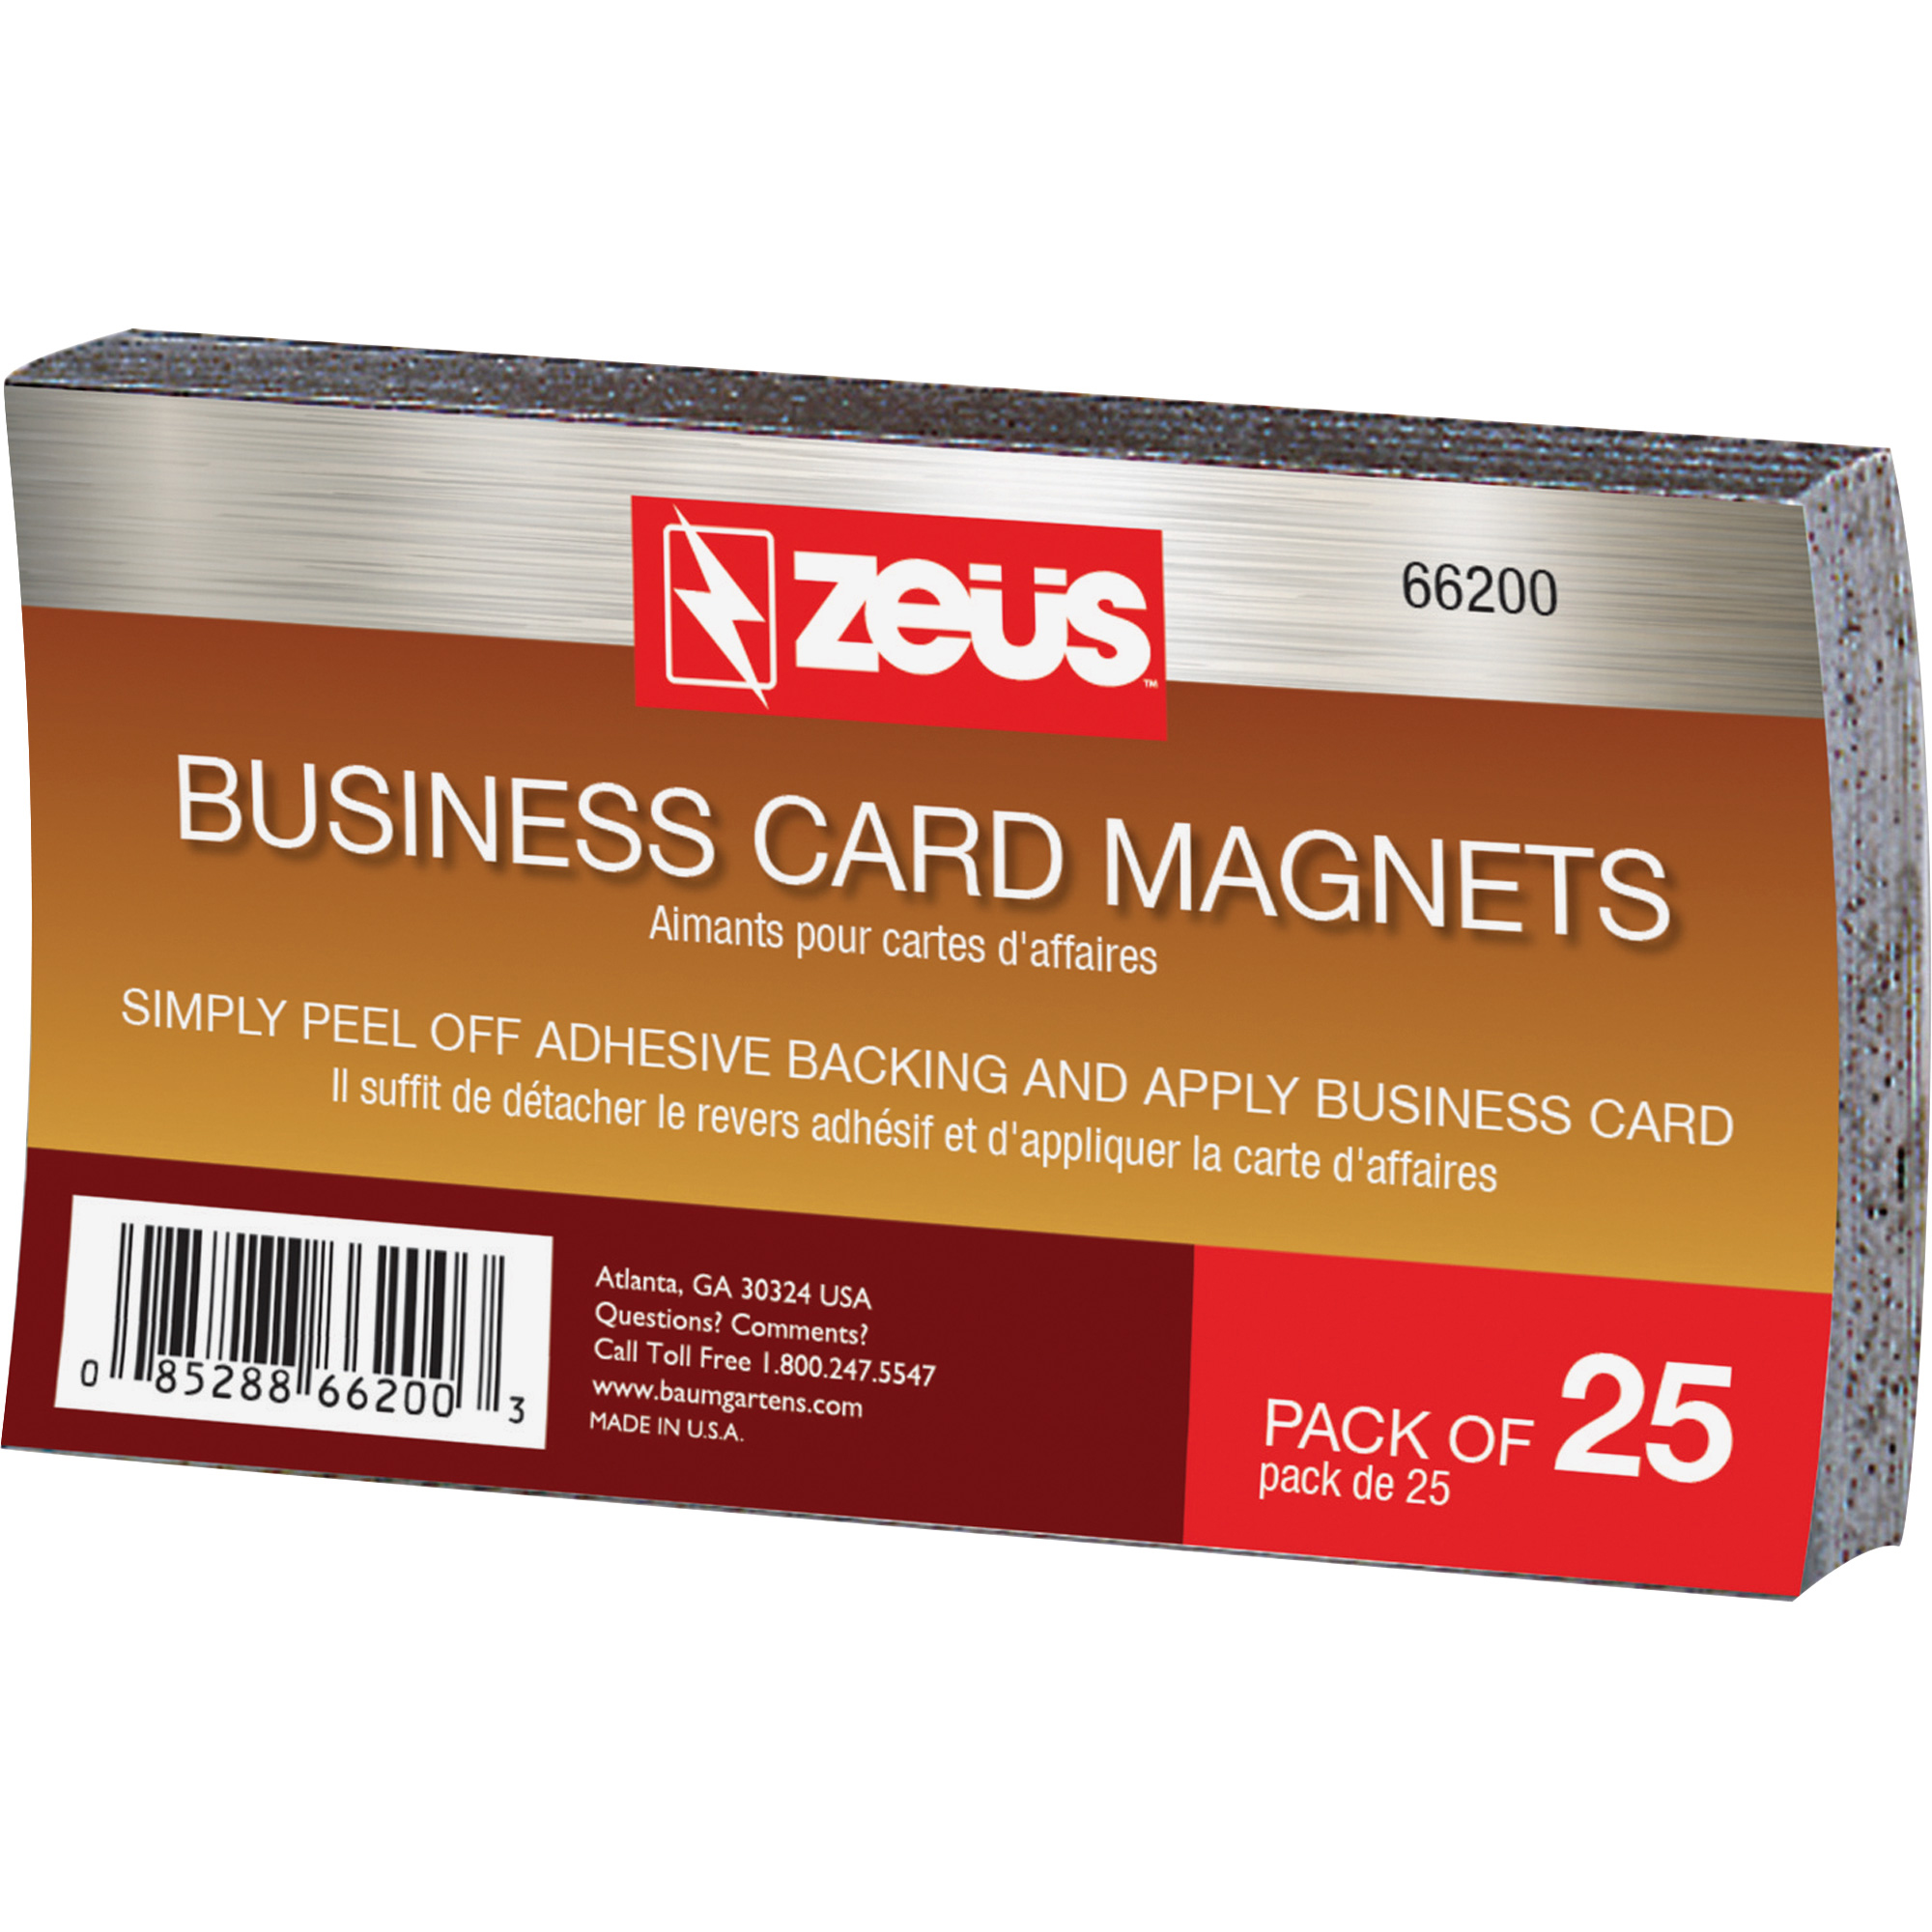 Baumgartens business card magnets walmart magicingreecefo Image collections